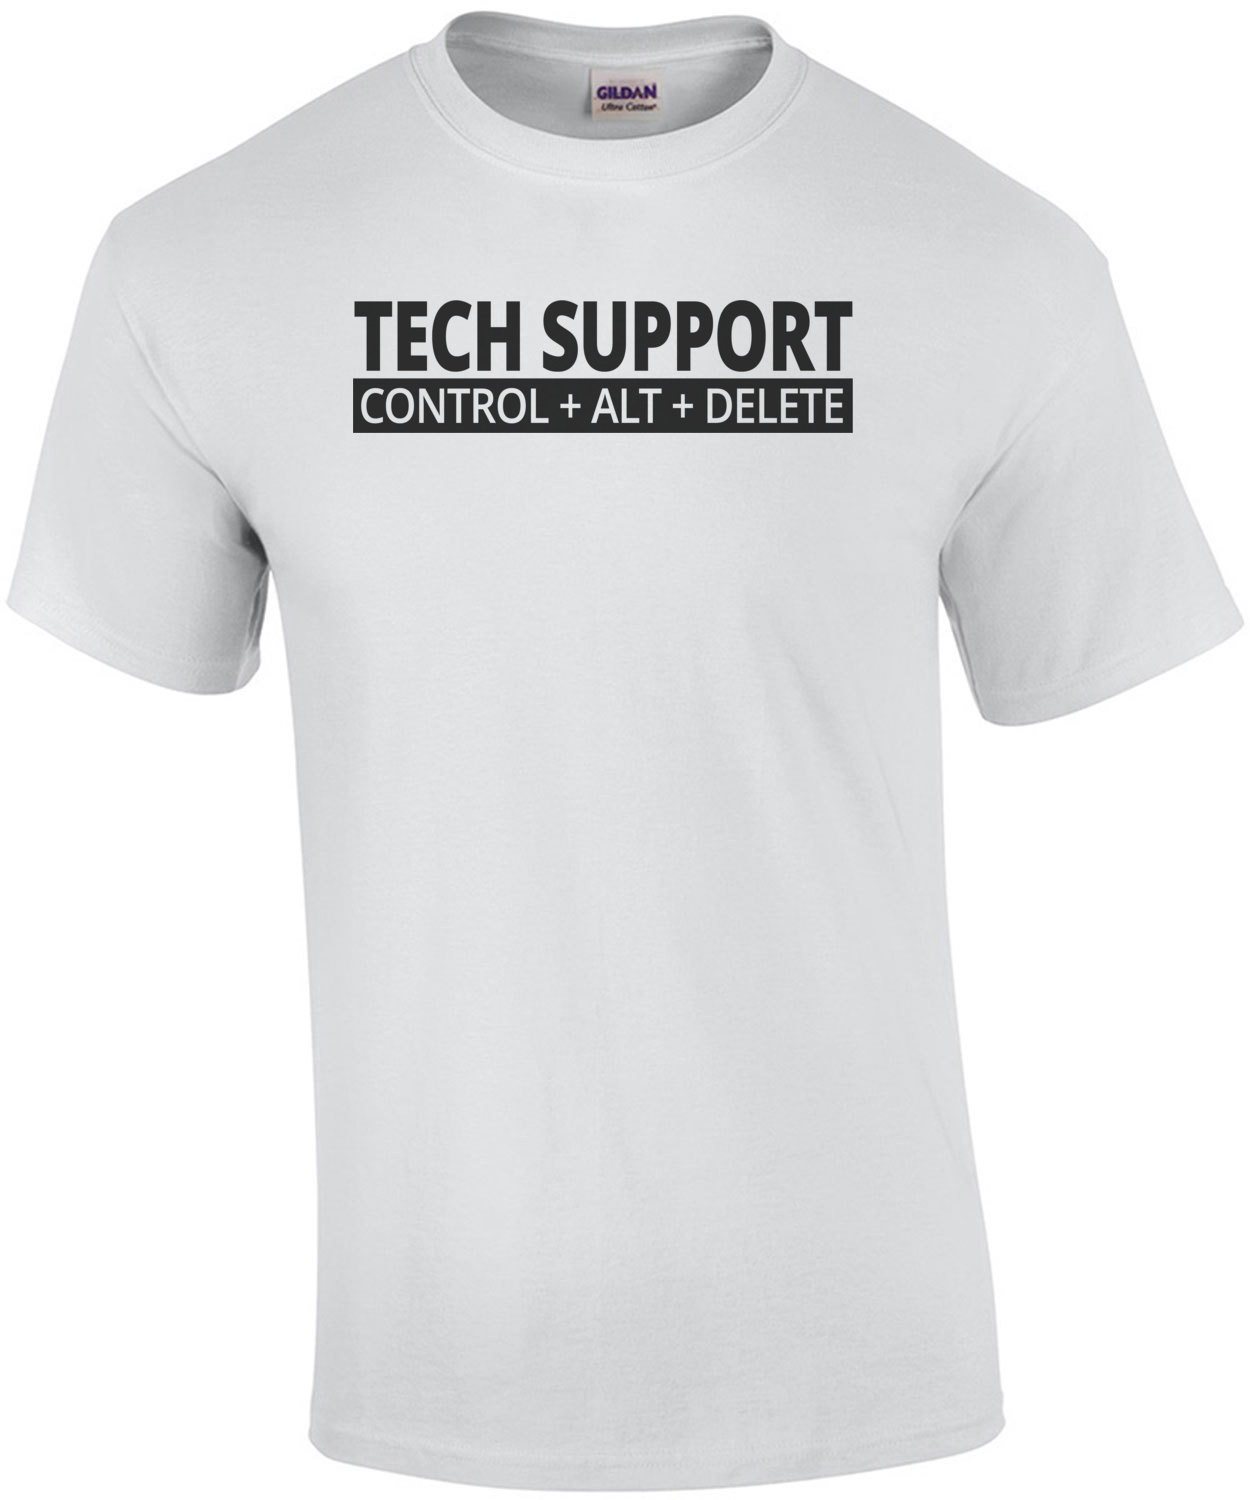 Tech Support Control Alt Delete T-Shirt